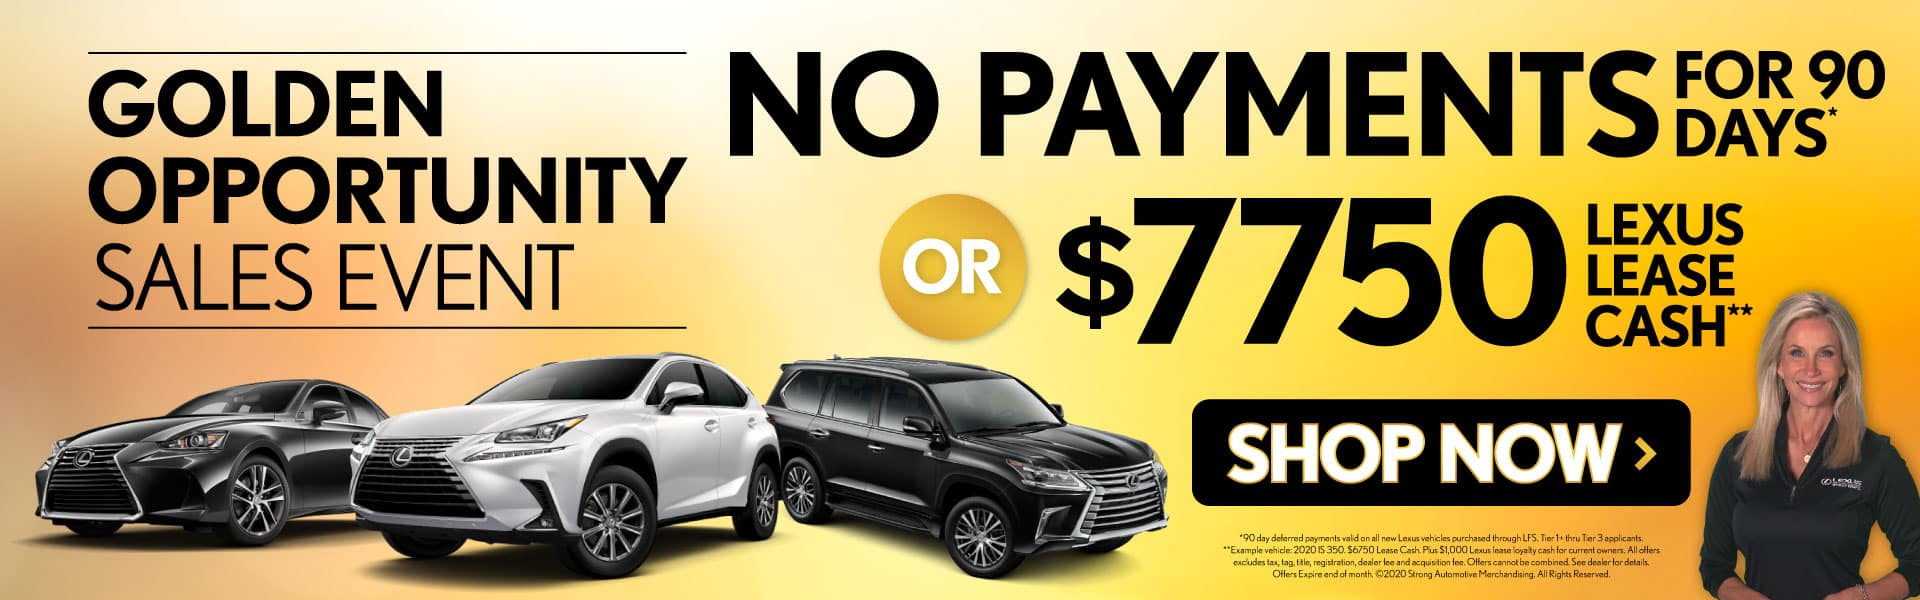 No Payments for 90 Days or $7750 Lease Cash - Shop Now